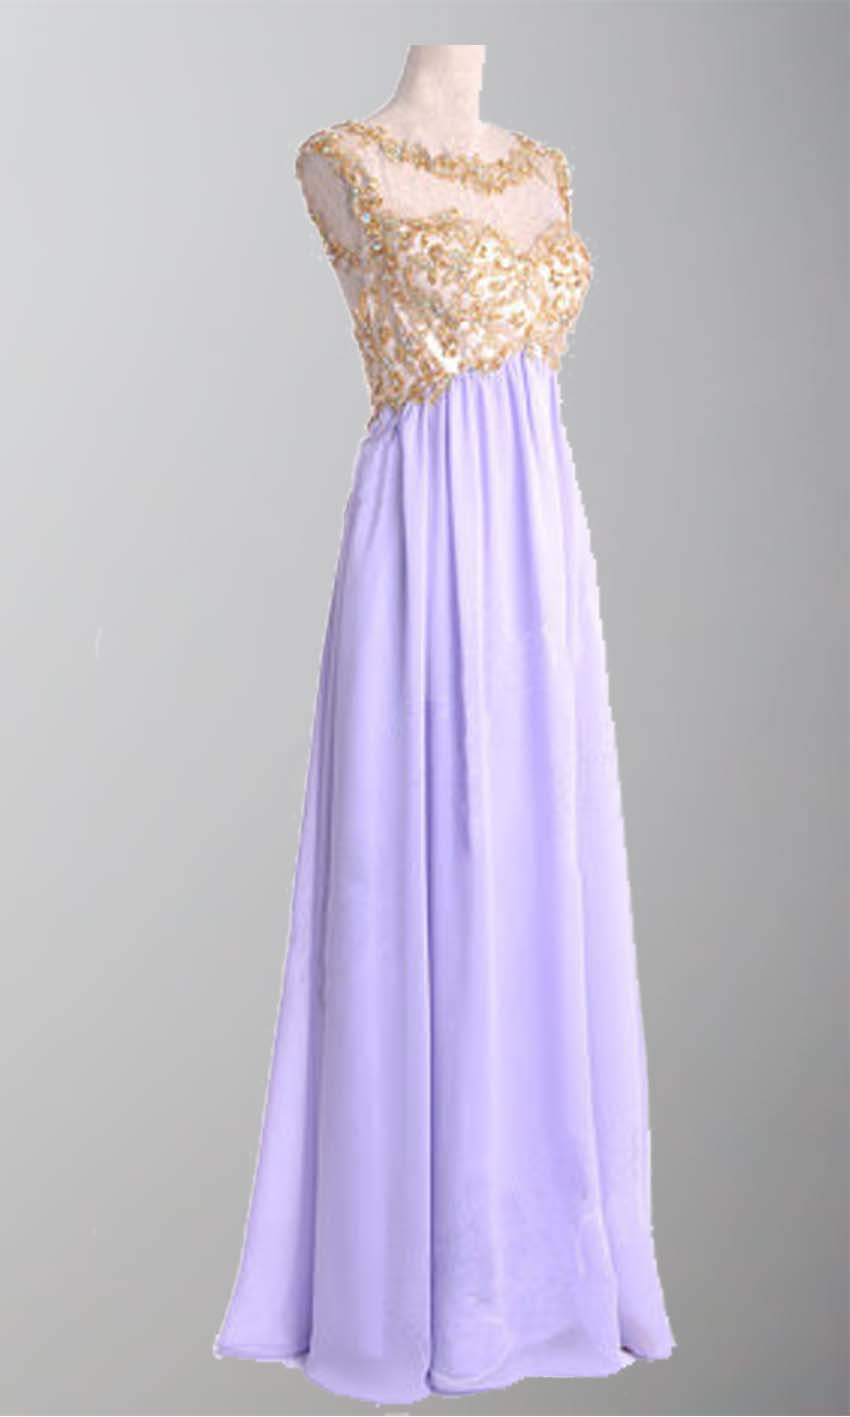 Pink Lace Flowers Embroidery Long Formal Dresses KSP293 [KSP293] - £108.00 : Cheap Prom Dresses Uk, Bridesmaid Dresses, 2014 Prom & Evening Dresses, Look for cheap elegant prom dresses 2014, cocktail gowns, or dresses for special occasions? kissprom.co.uk offers various bridesmaid dresses, evening dress, free shipping to UK etc.